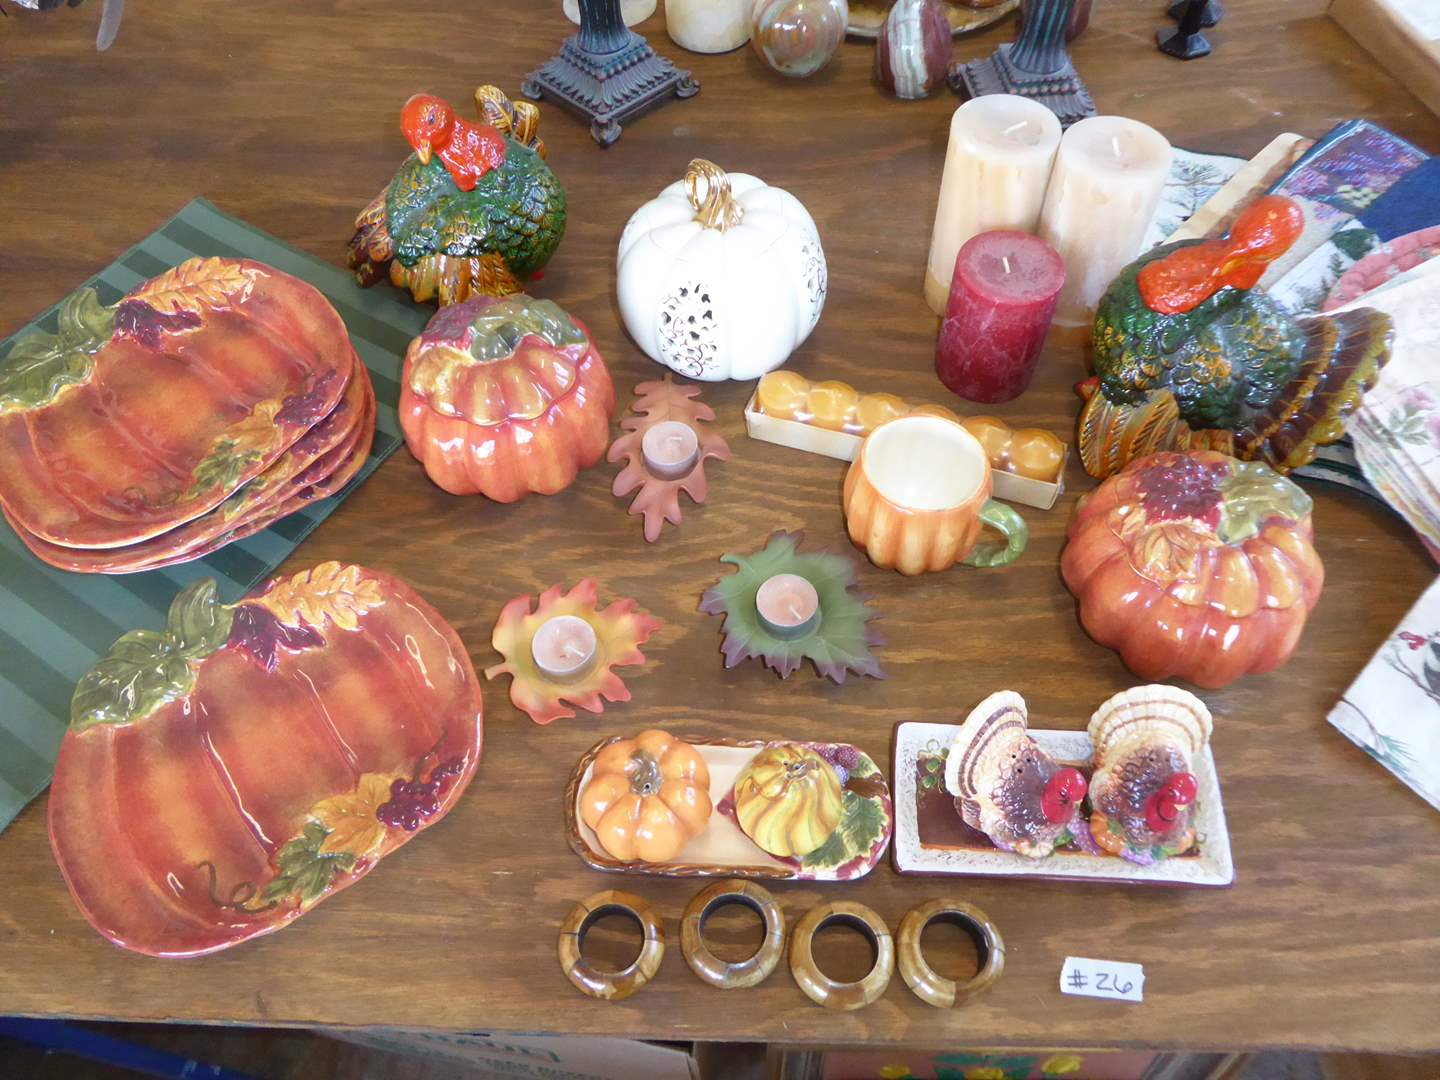 Lot # 26 - Ceramic Turkeys, Ceramic Pumpkin Plates & Other Fall Decor  (main image)